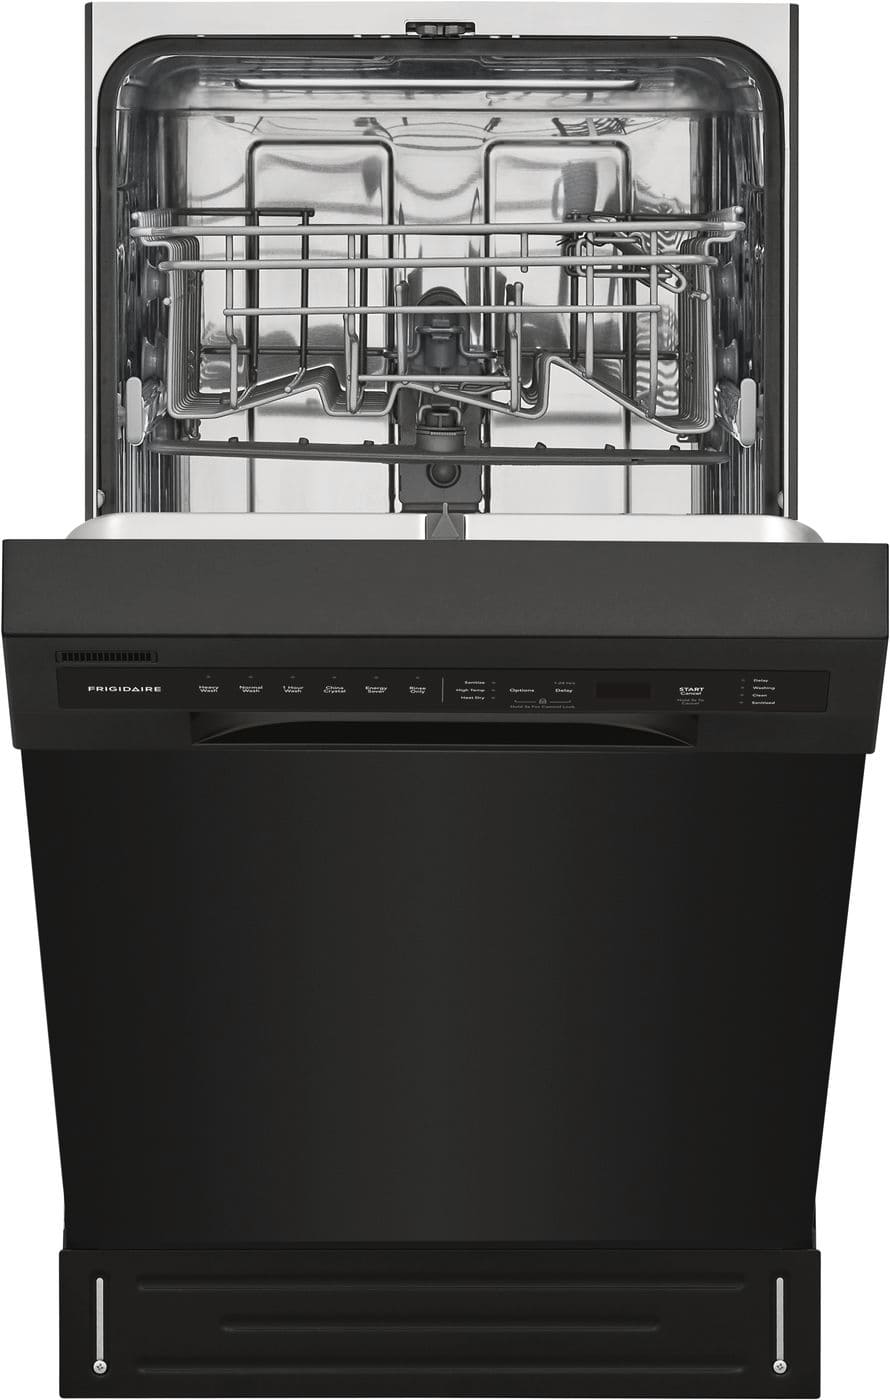 "Model: FFBD1831UB | Frigidaire 18"" Built-In Dishwasher"